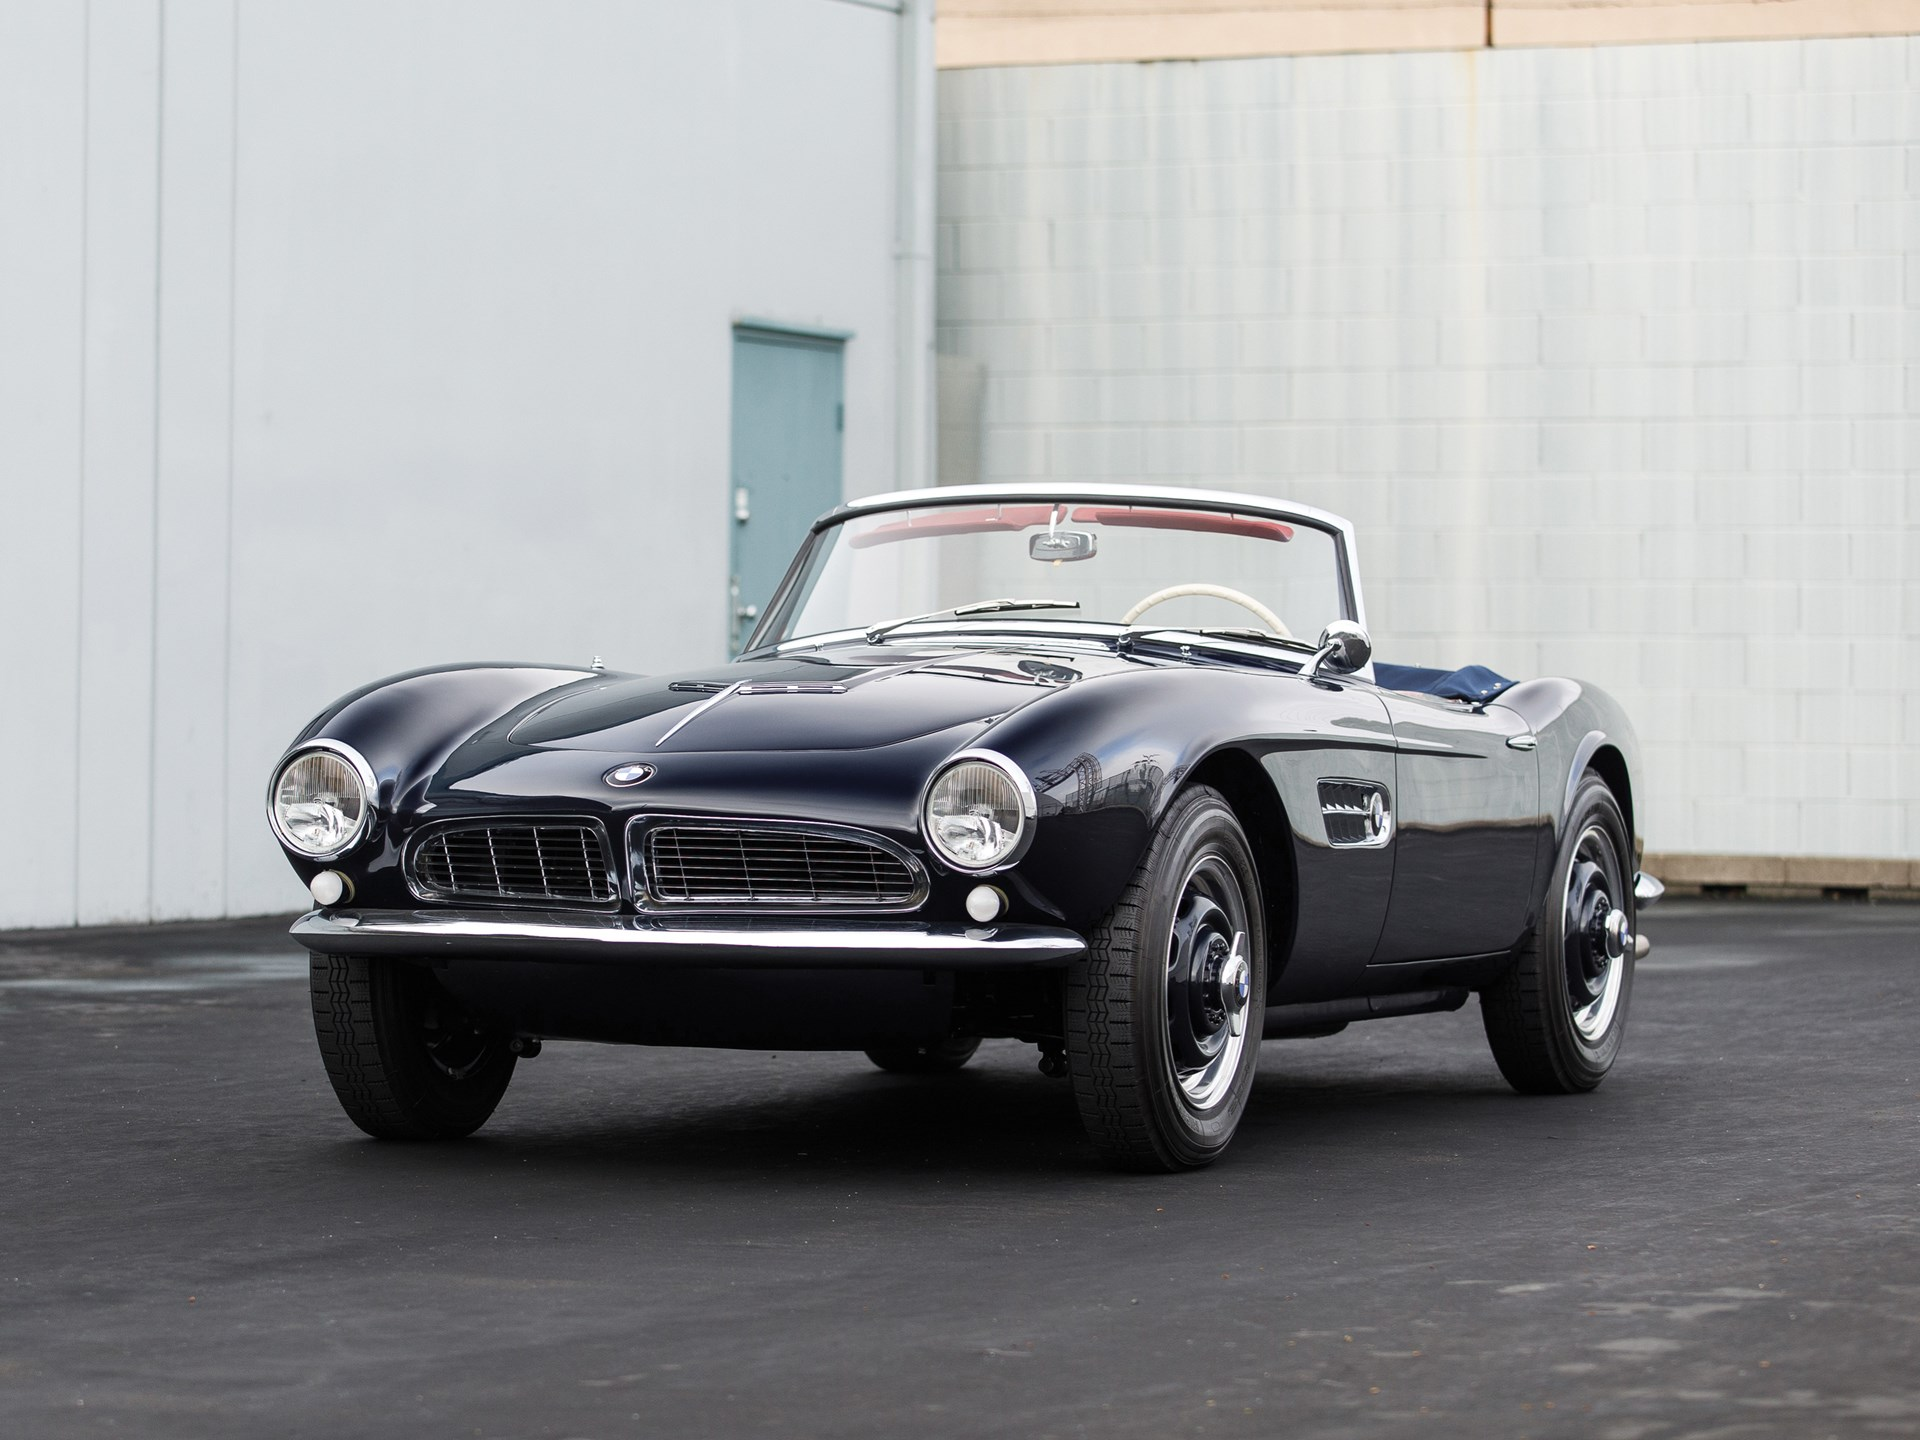 Image result for rm arizona 2019 1958 BMW 507 Roadster Series II